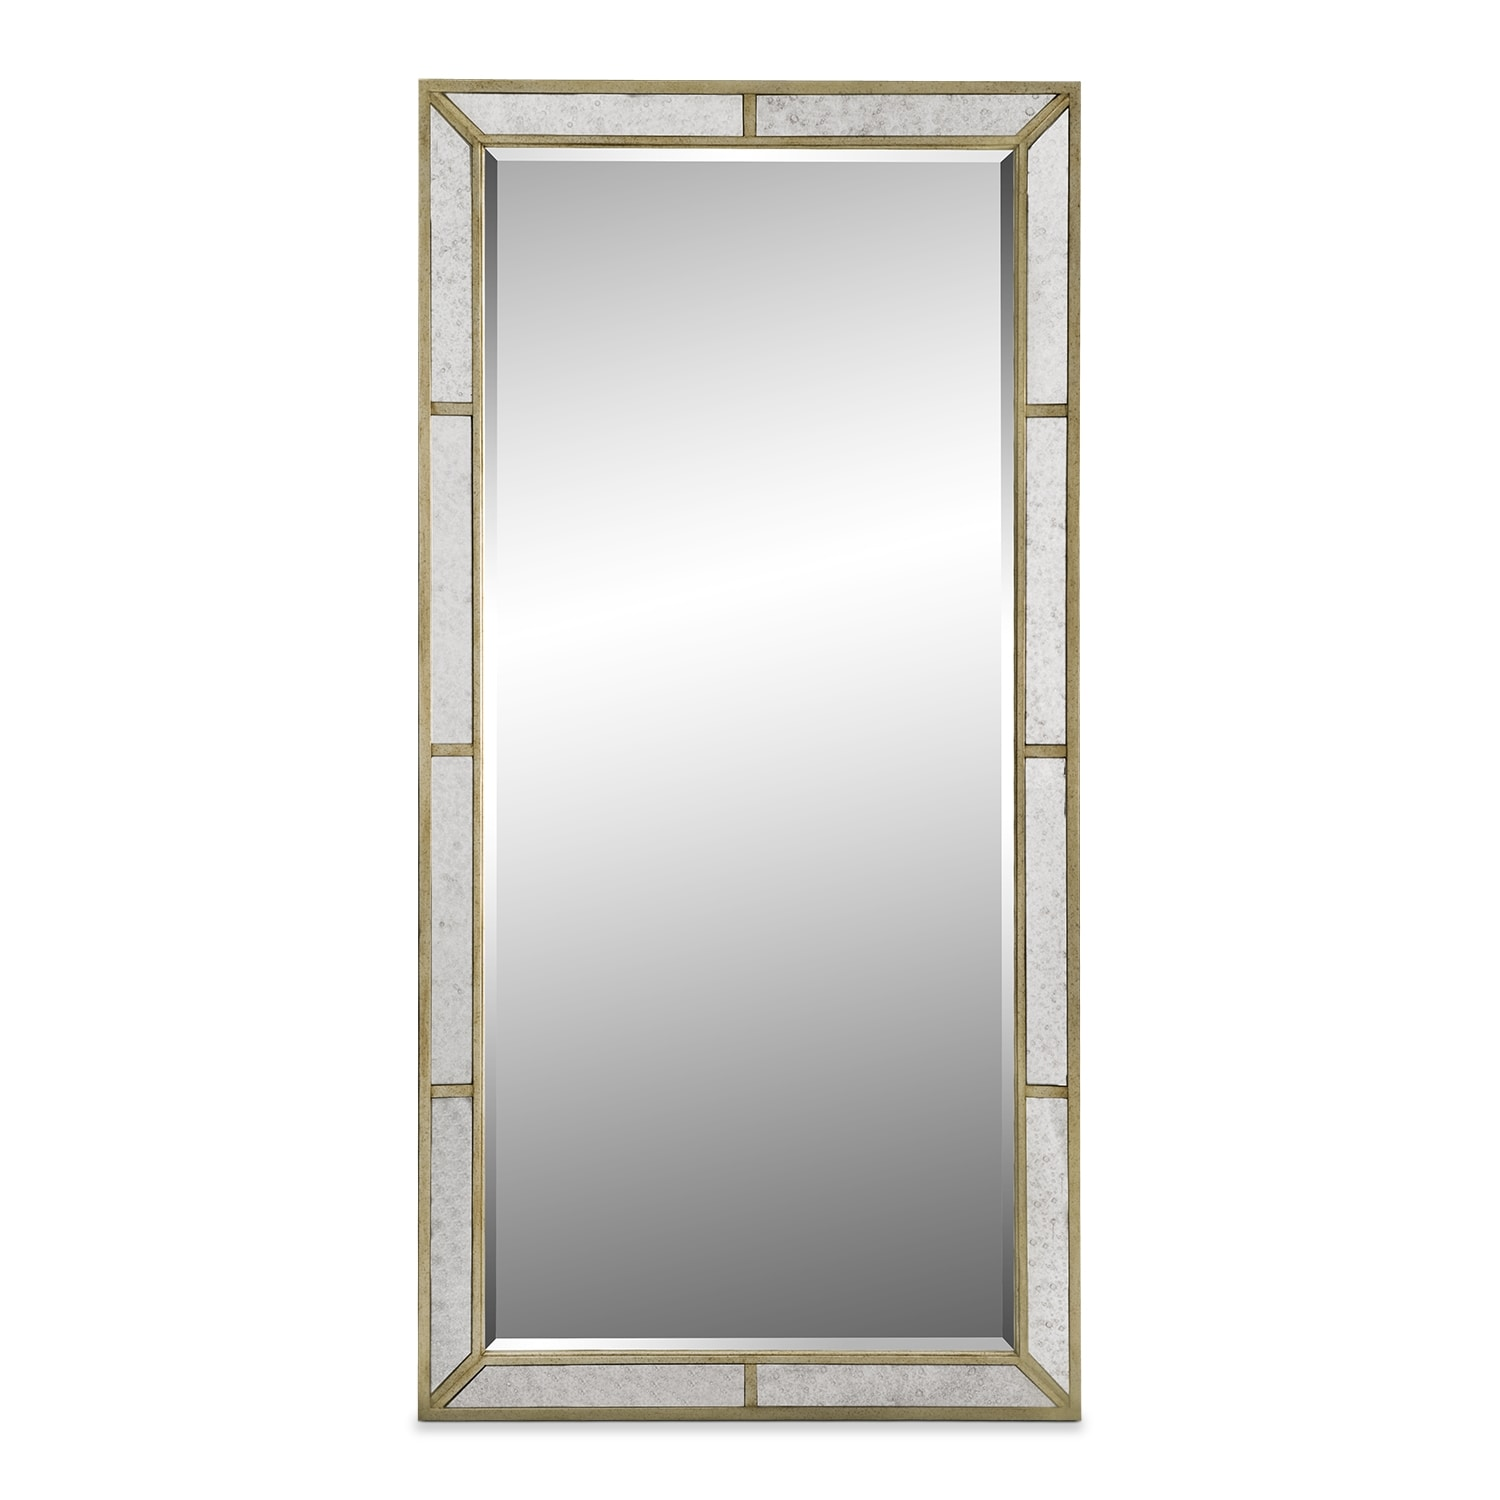 Bedroom Furniture - Angelina Floor Mirror - Metallic